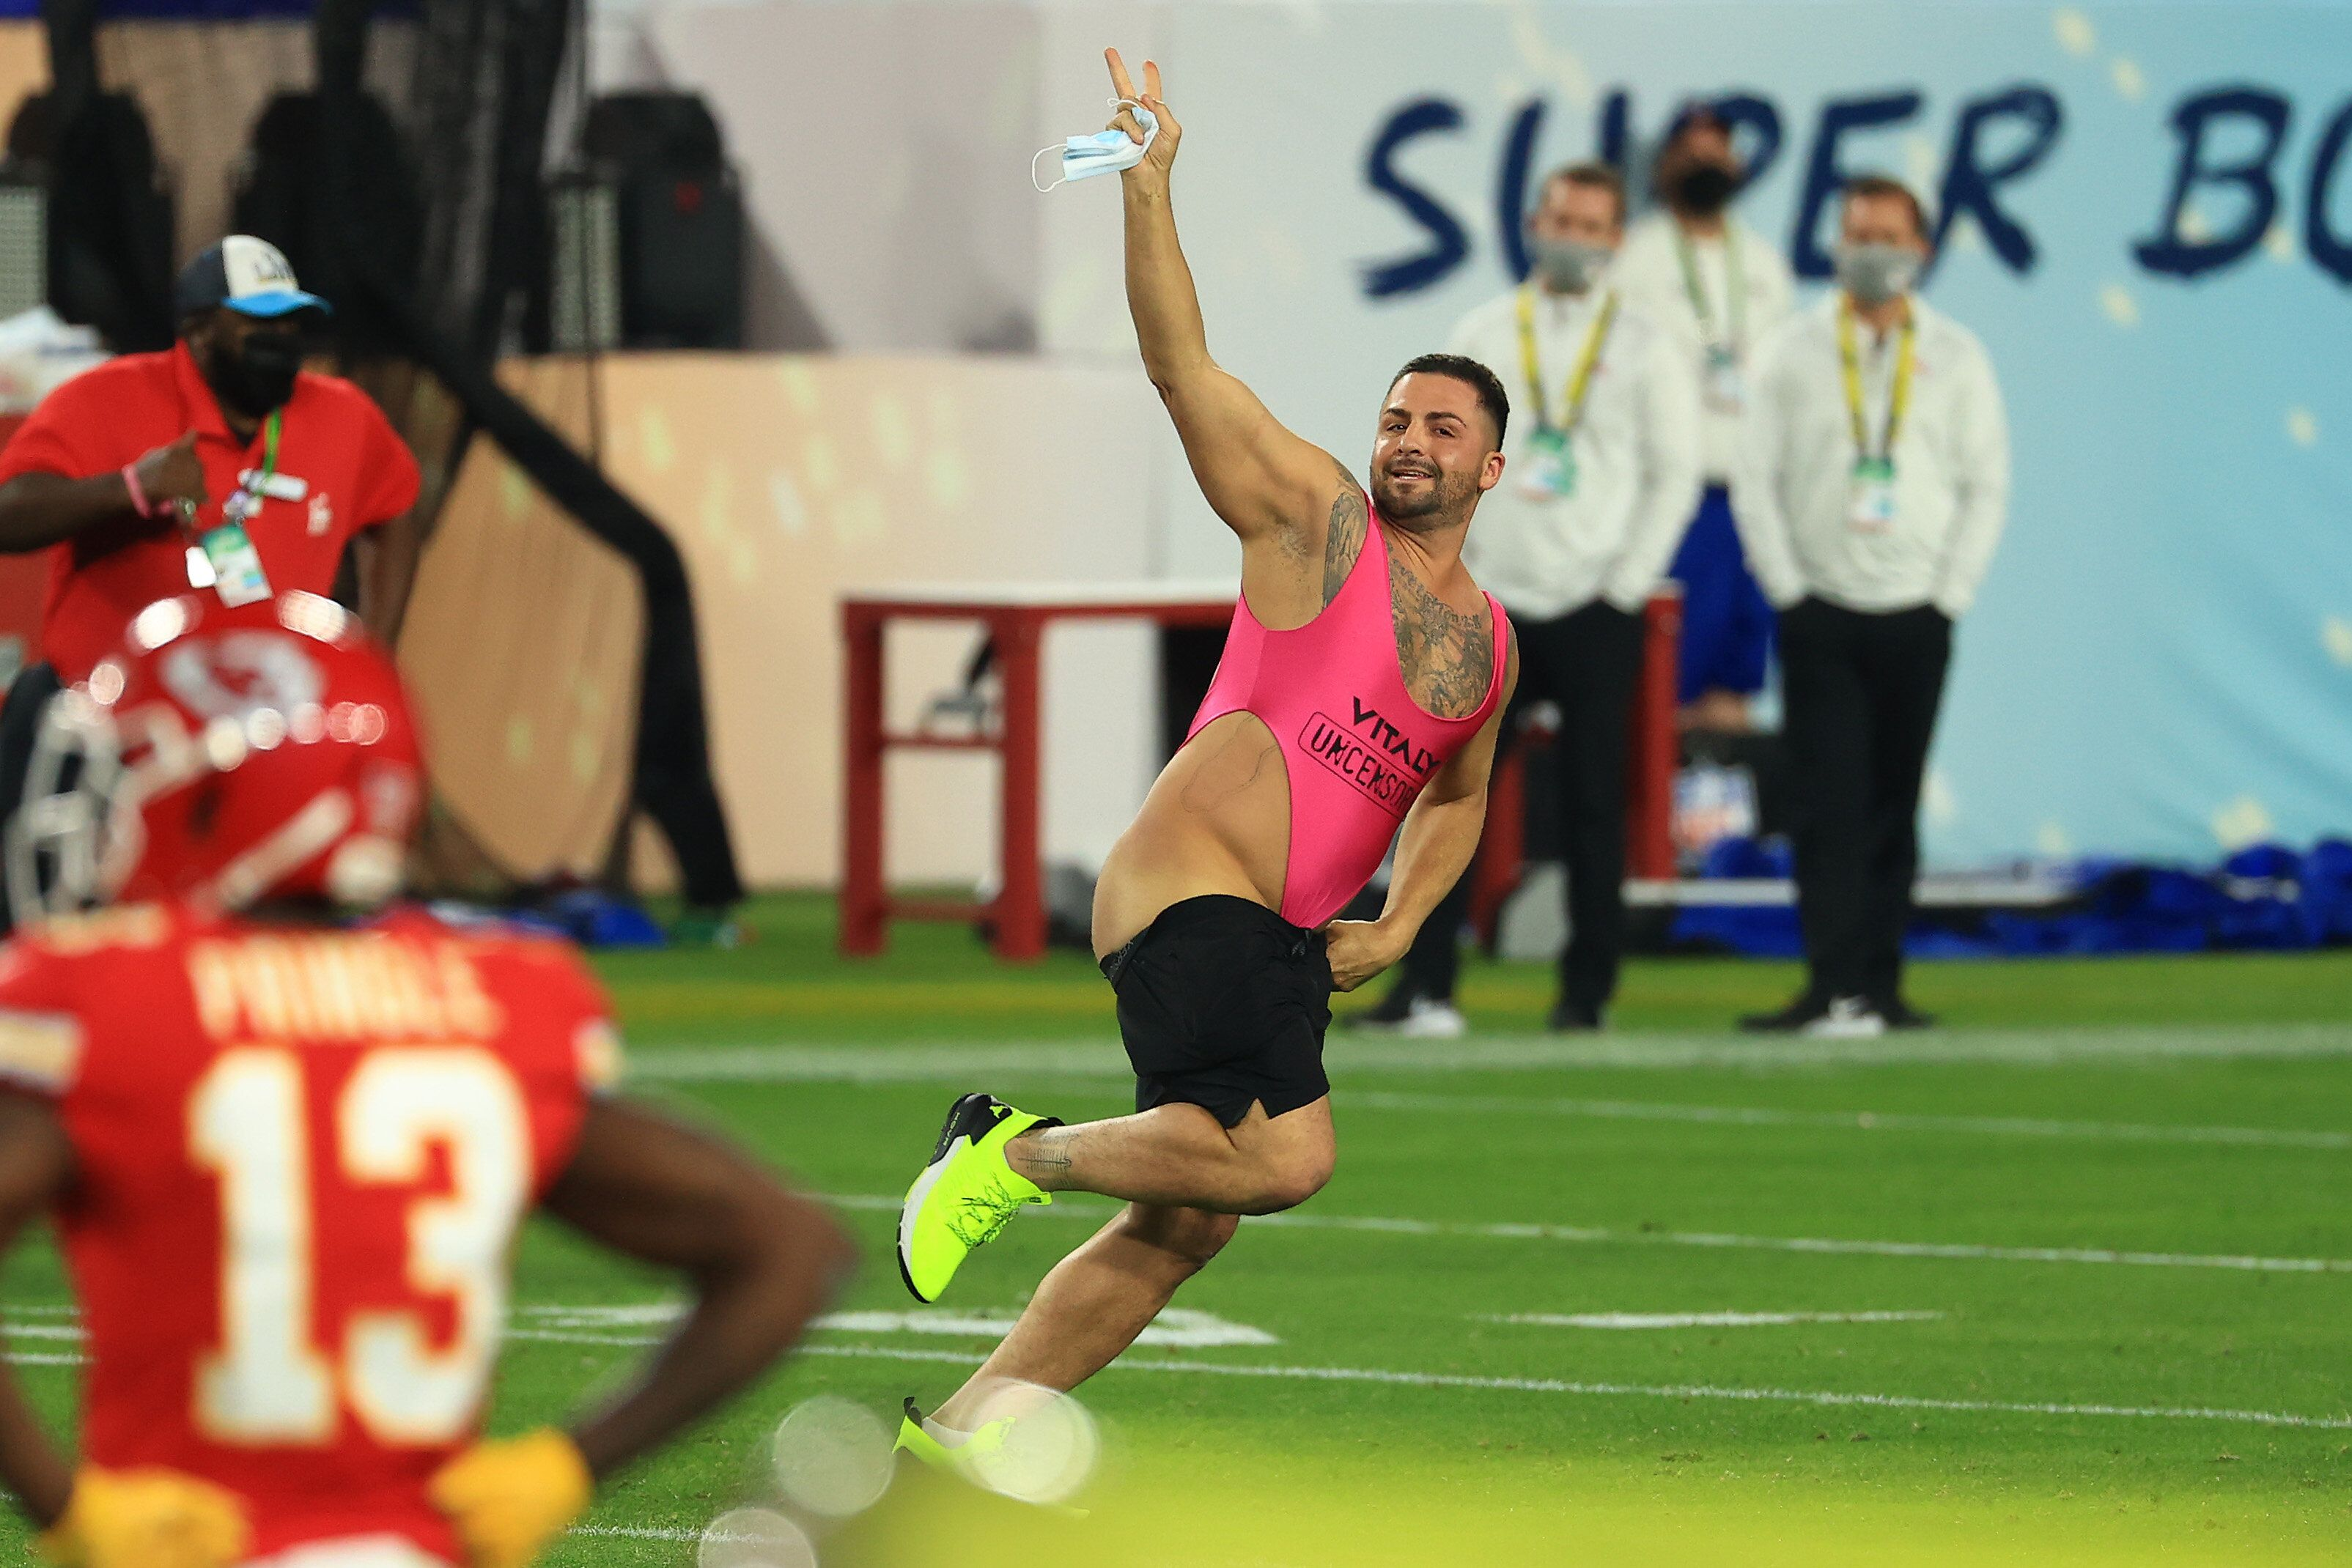 The man ran onto the field before victory was declared for the Tampa Bay Buccaneers.